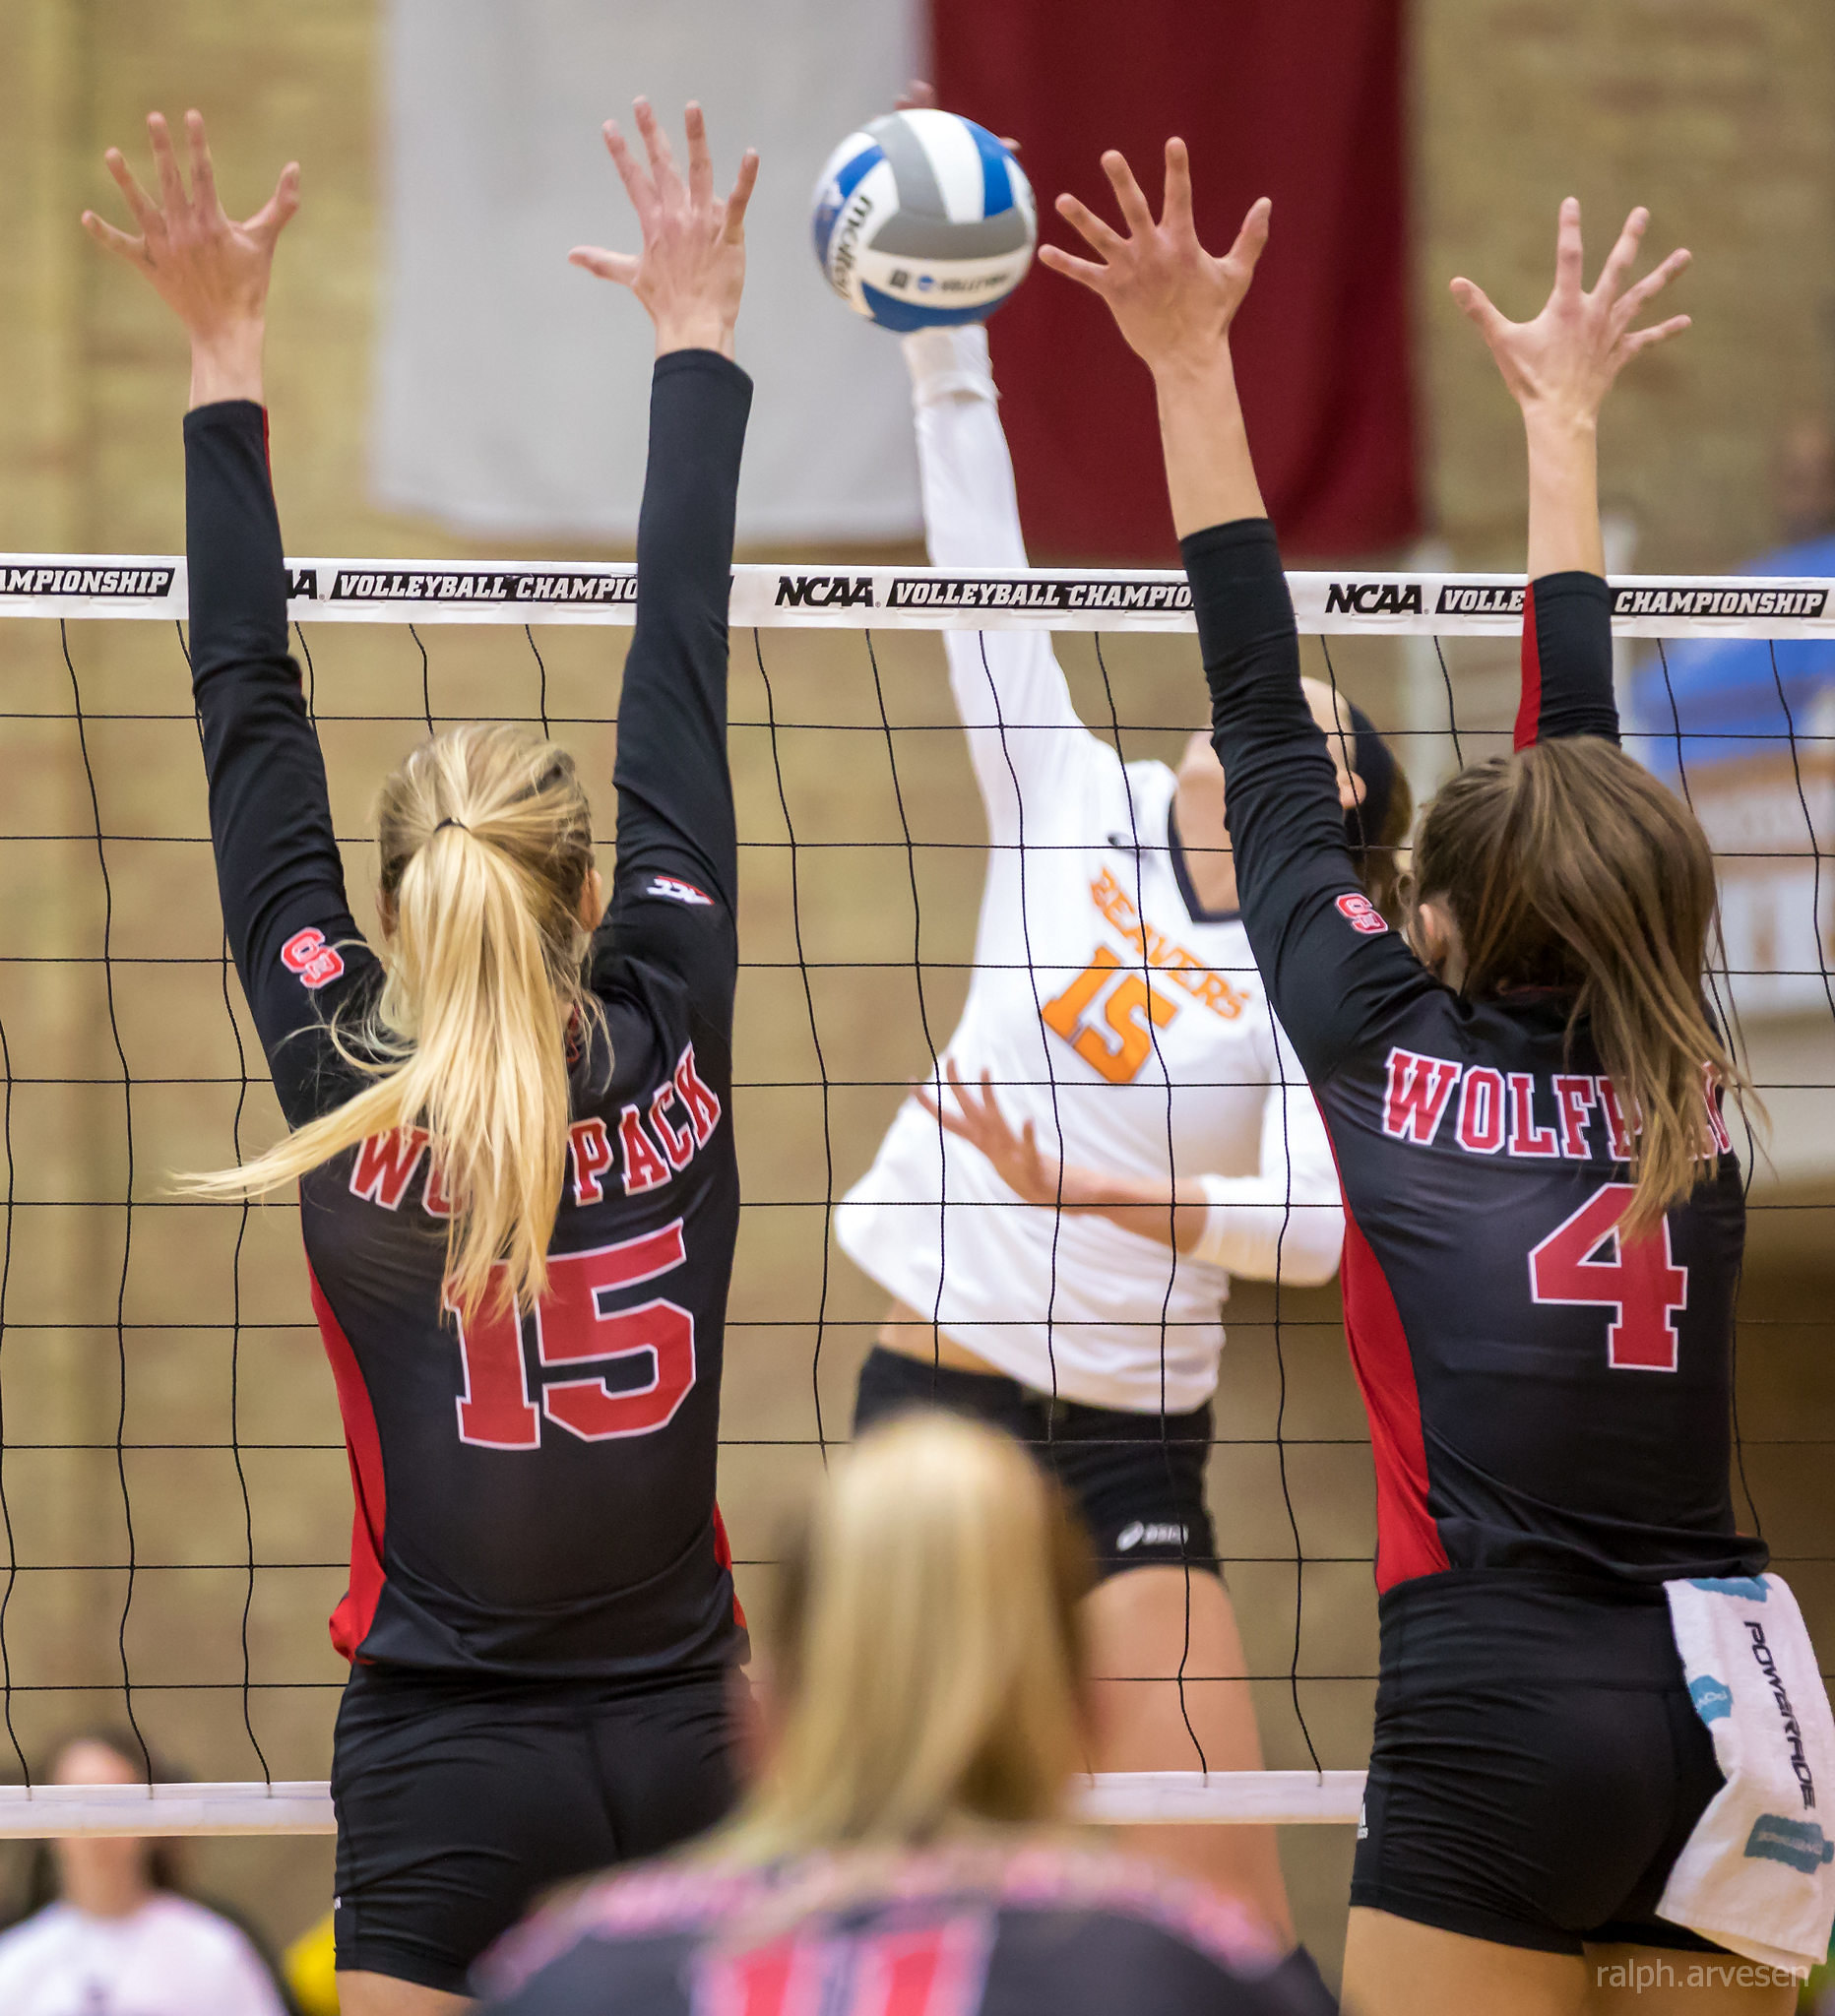 The Volleyball Block: Improve Defensive Skills With Tips on Blocking (Al Case)